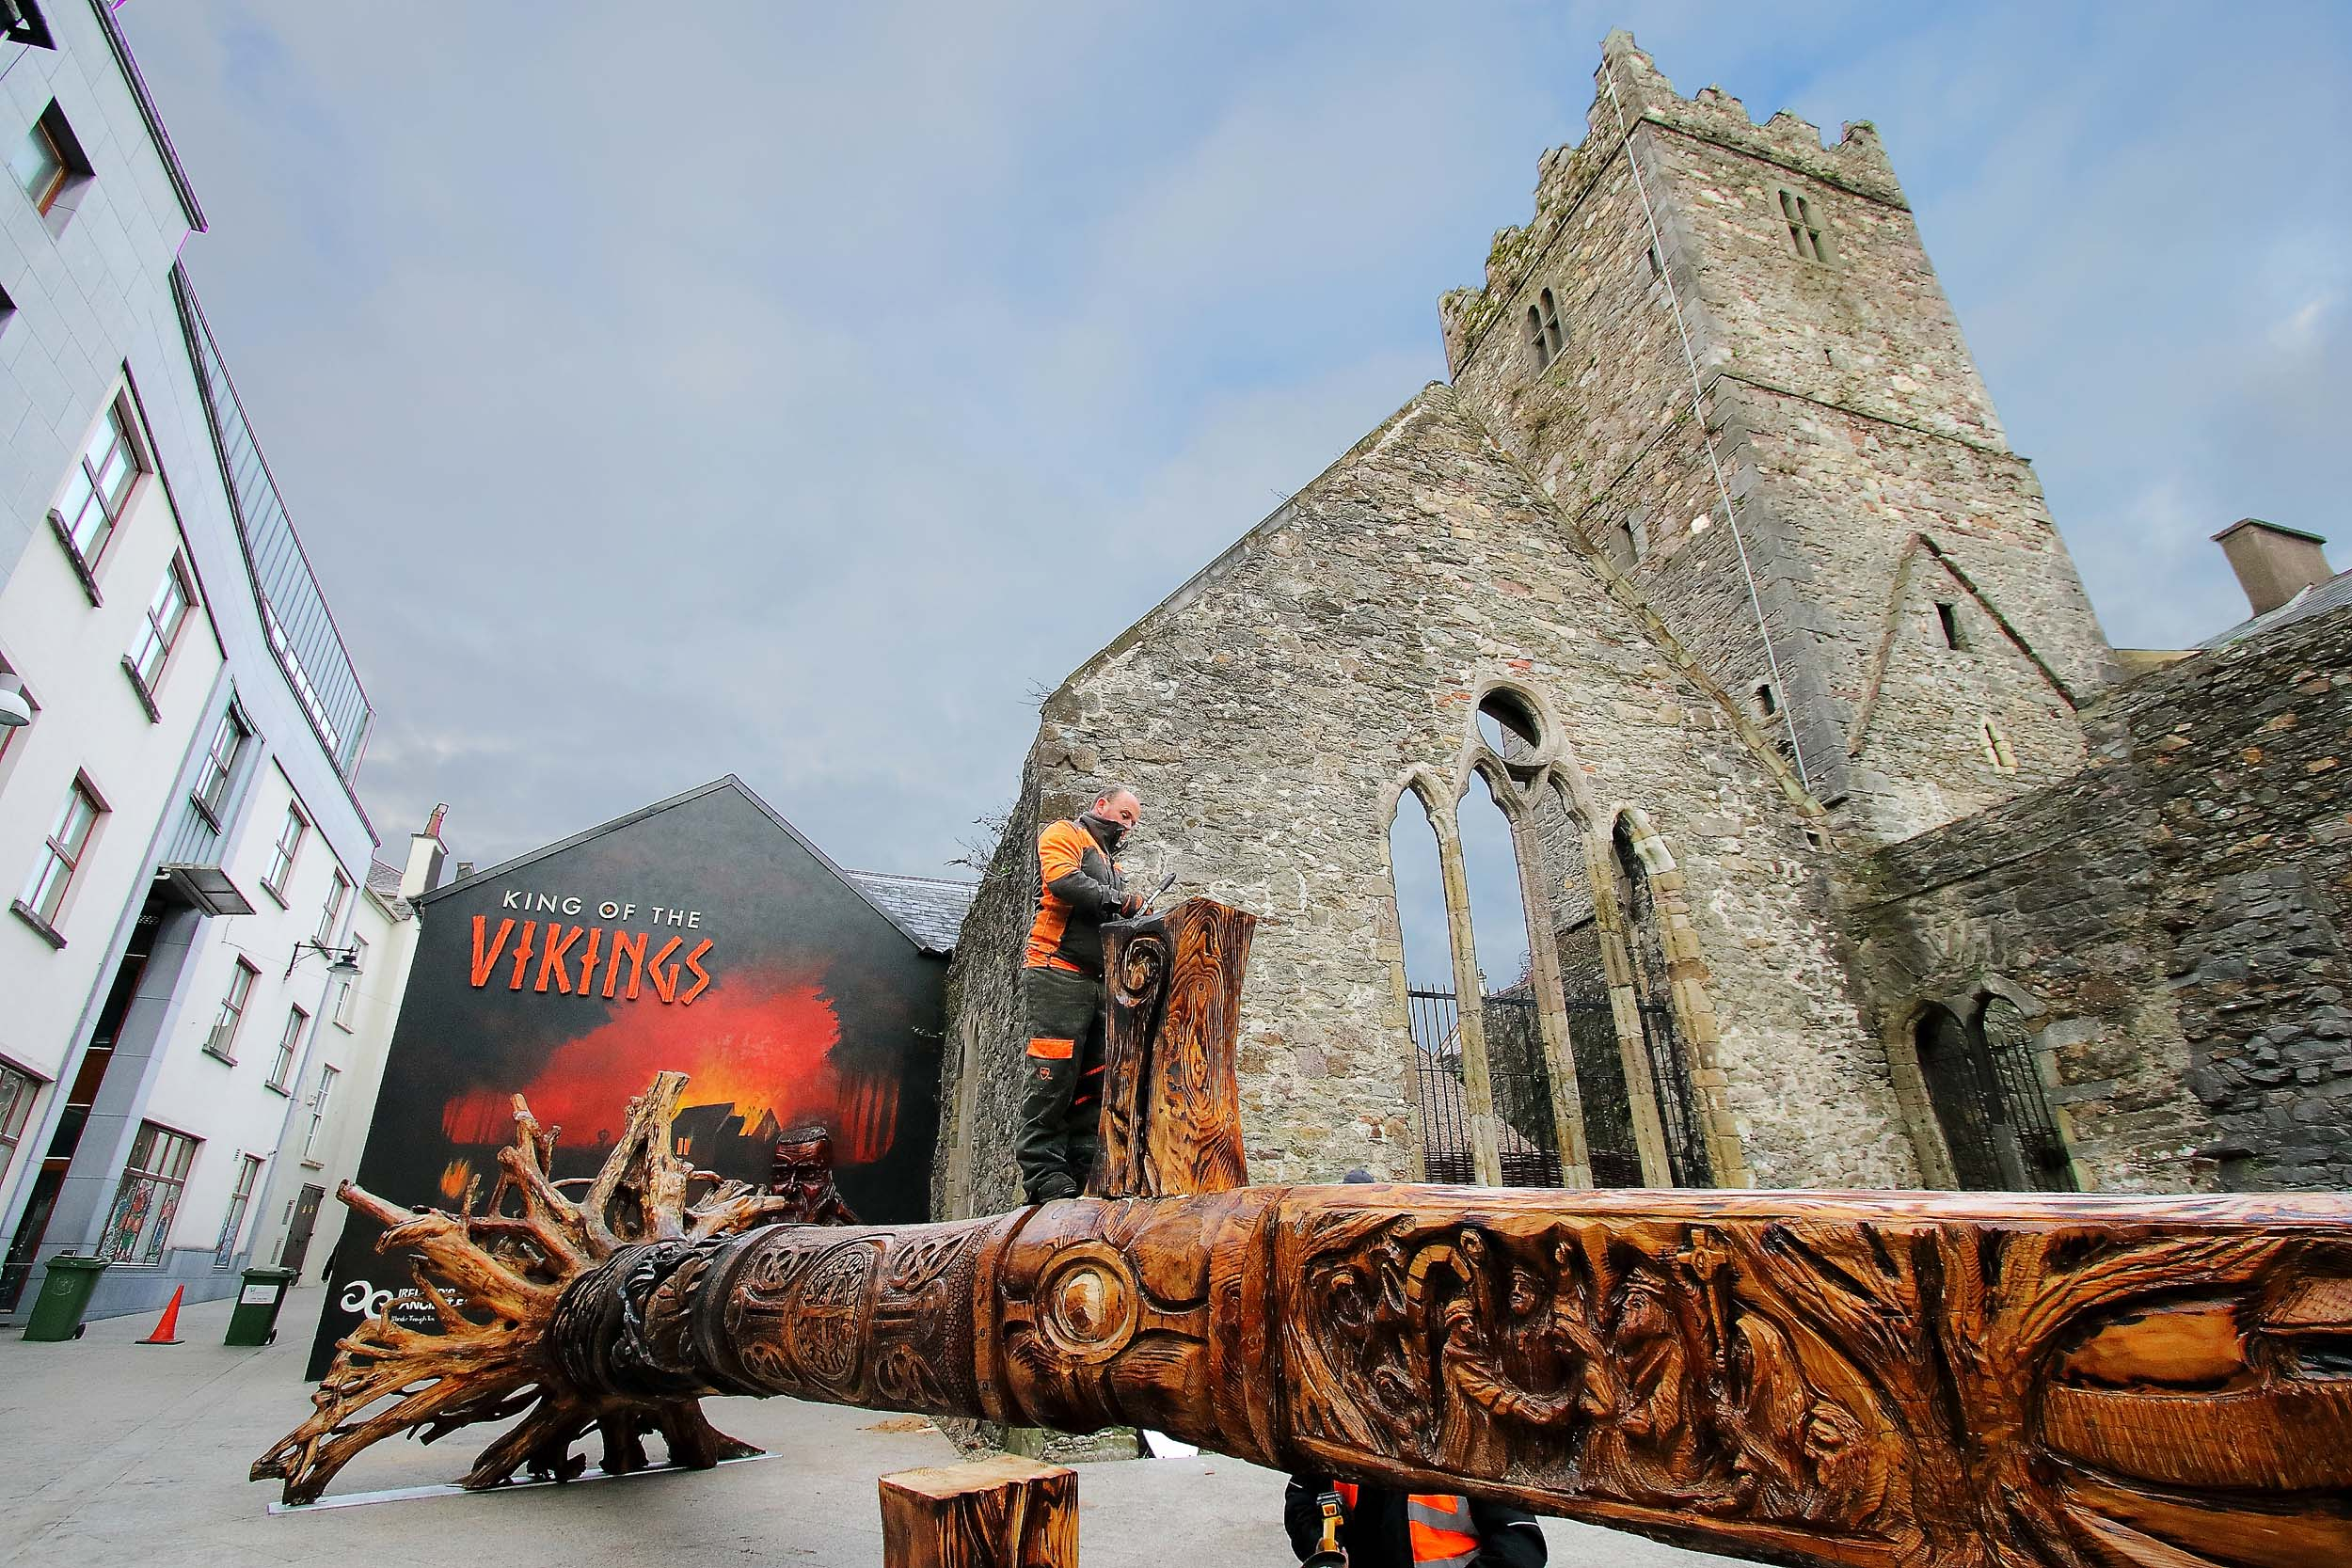 The new wooden sword sculpture in Waterford City is now in place.